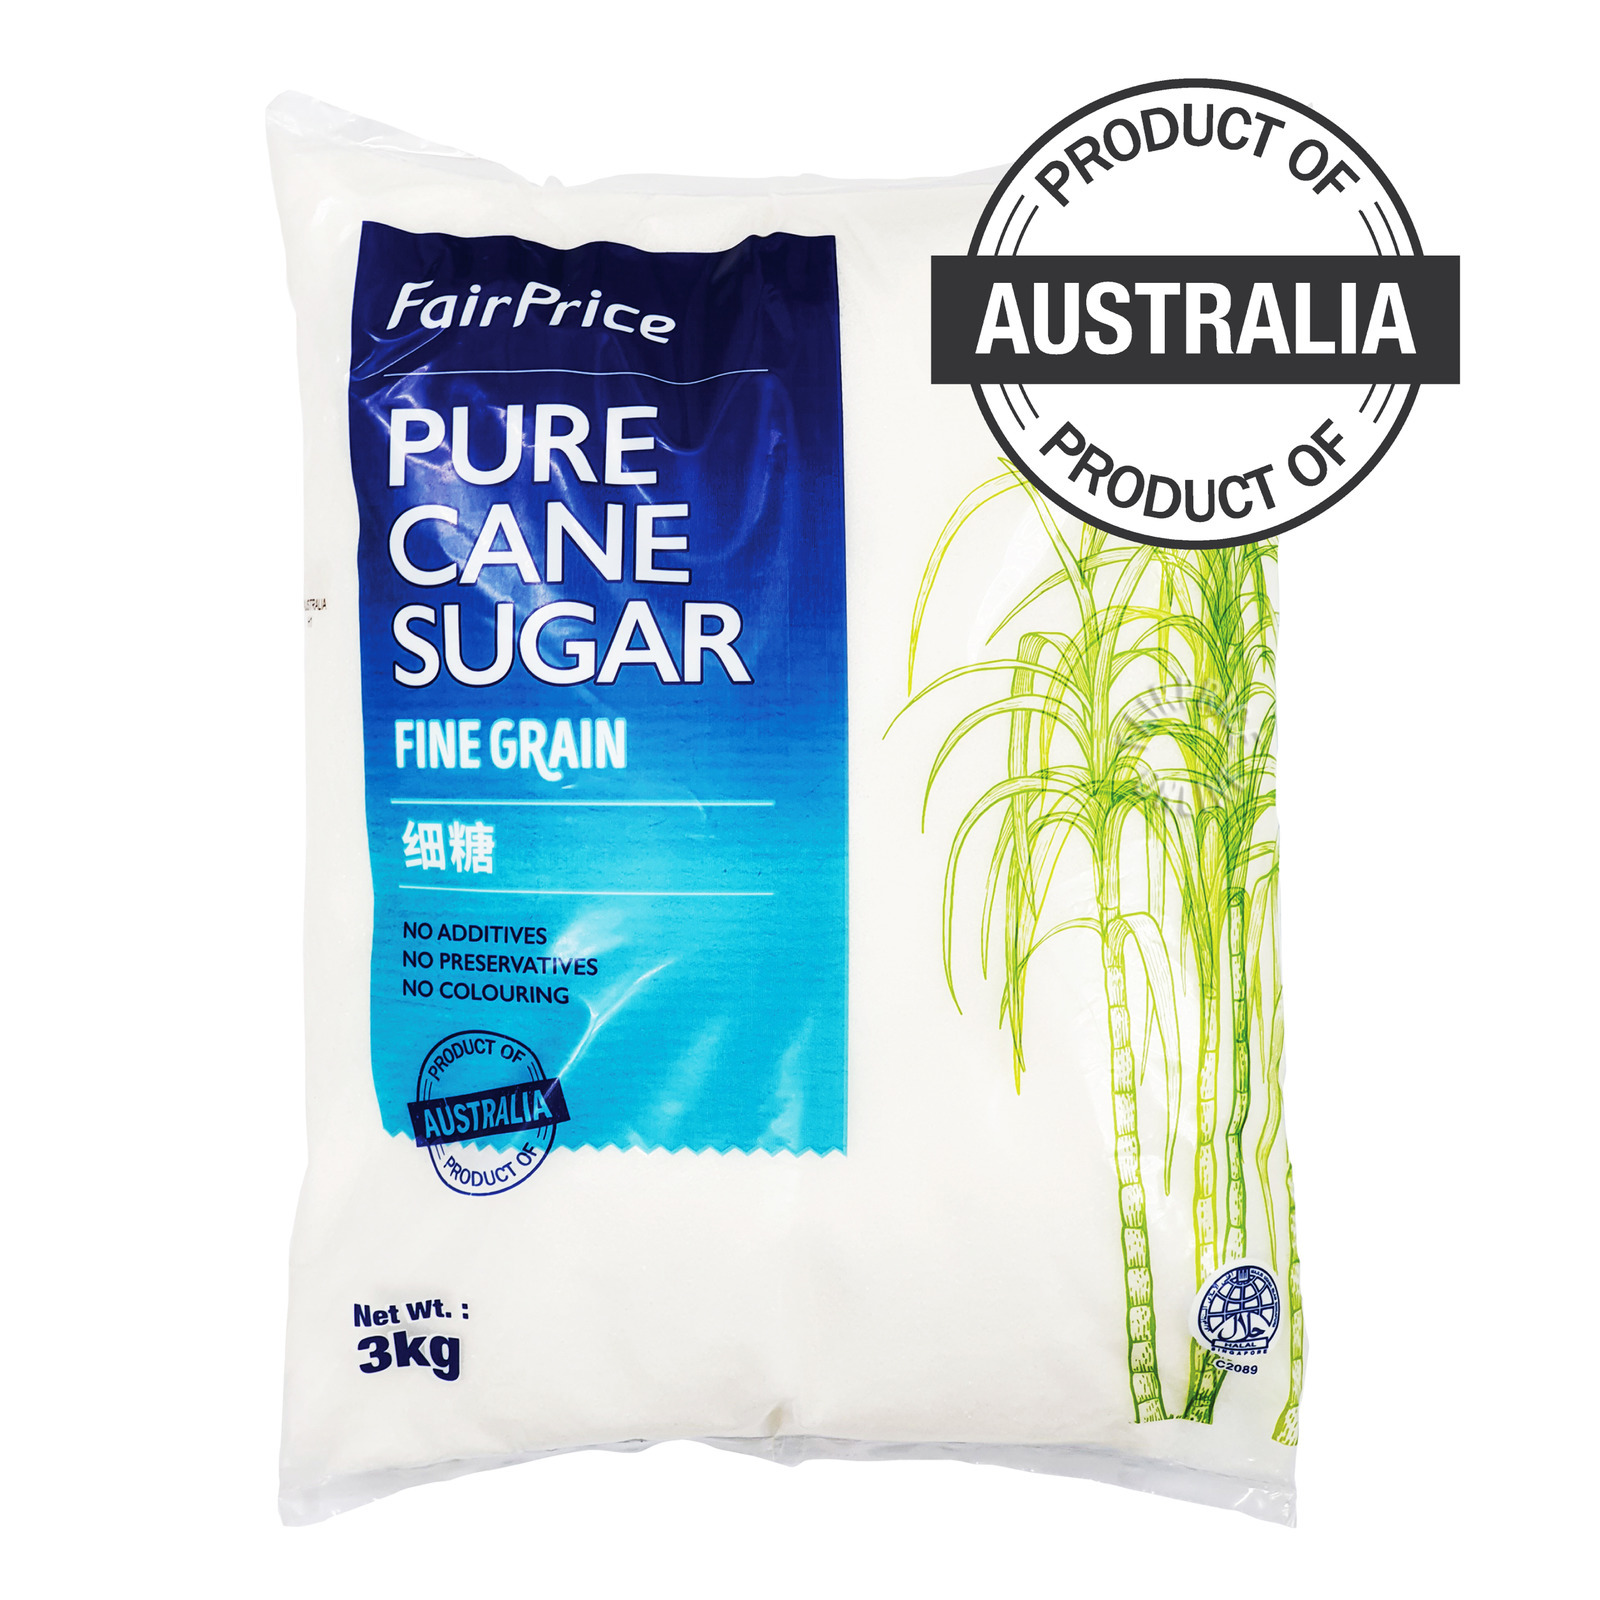 FairPrice Pure Cane Sugar - Fine Grain